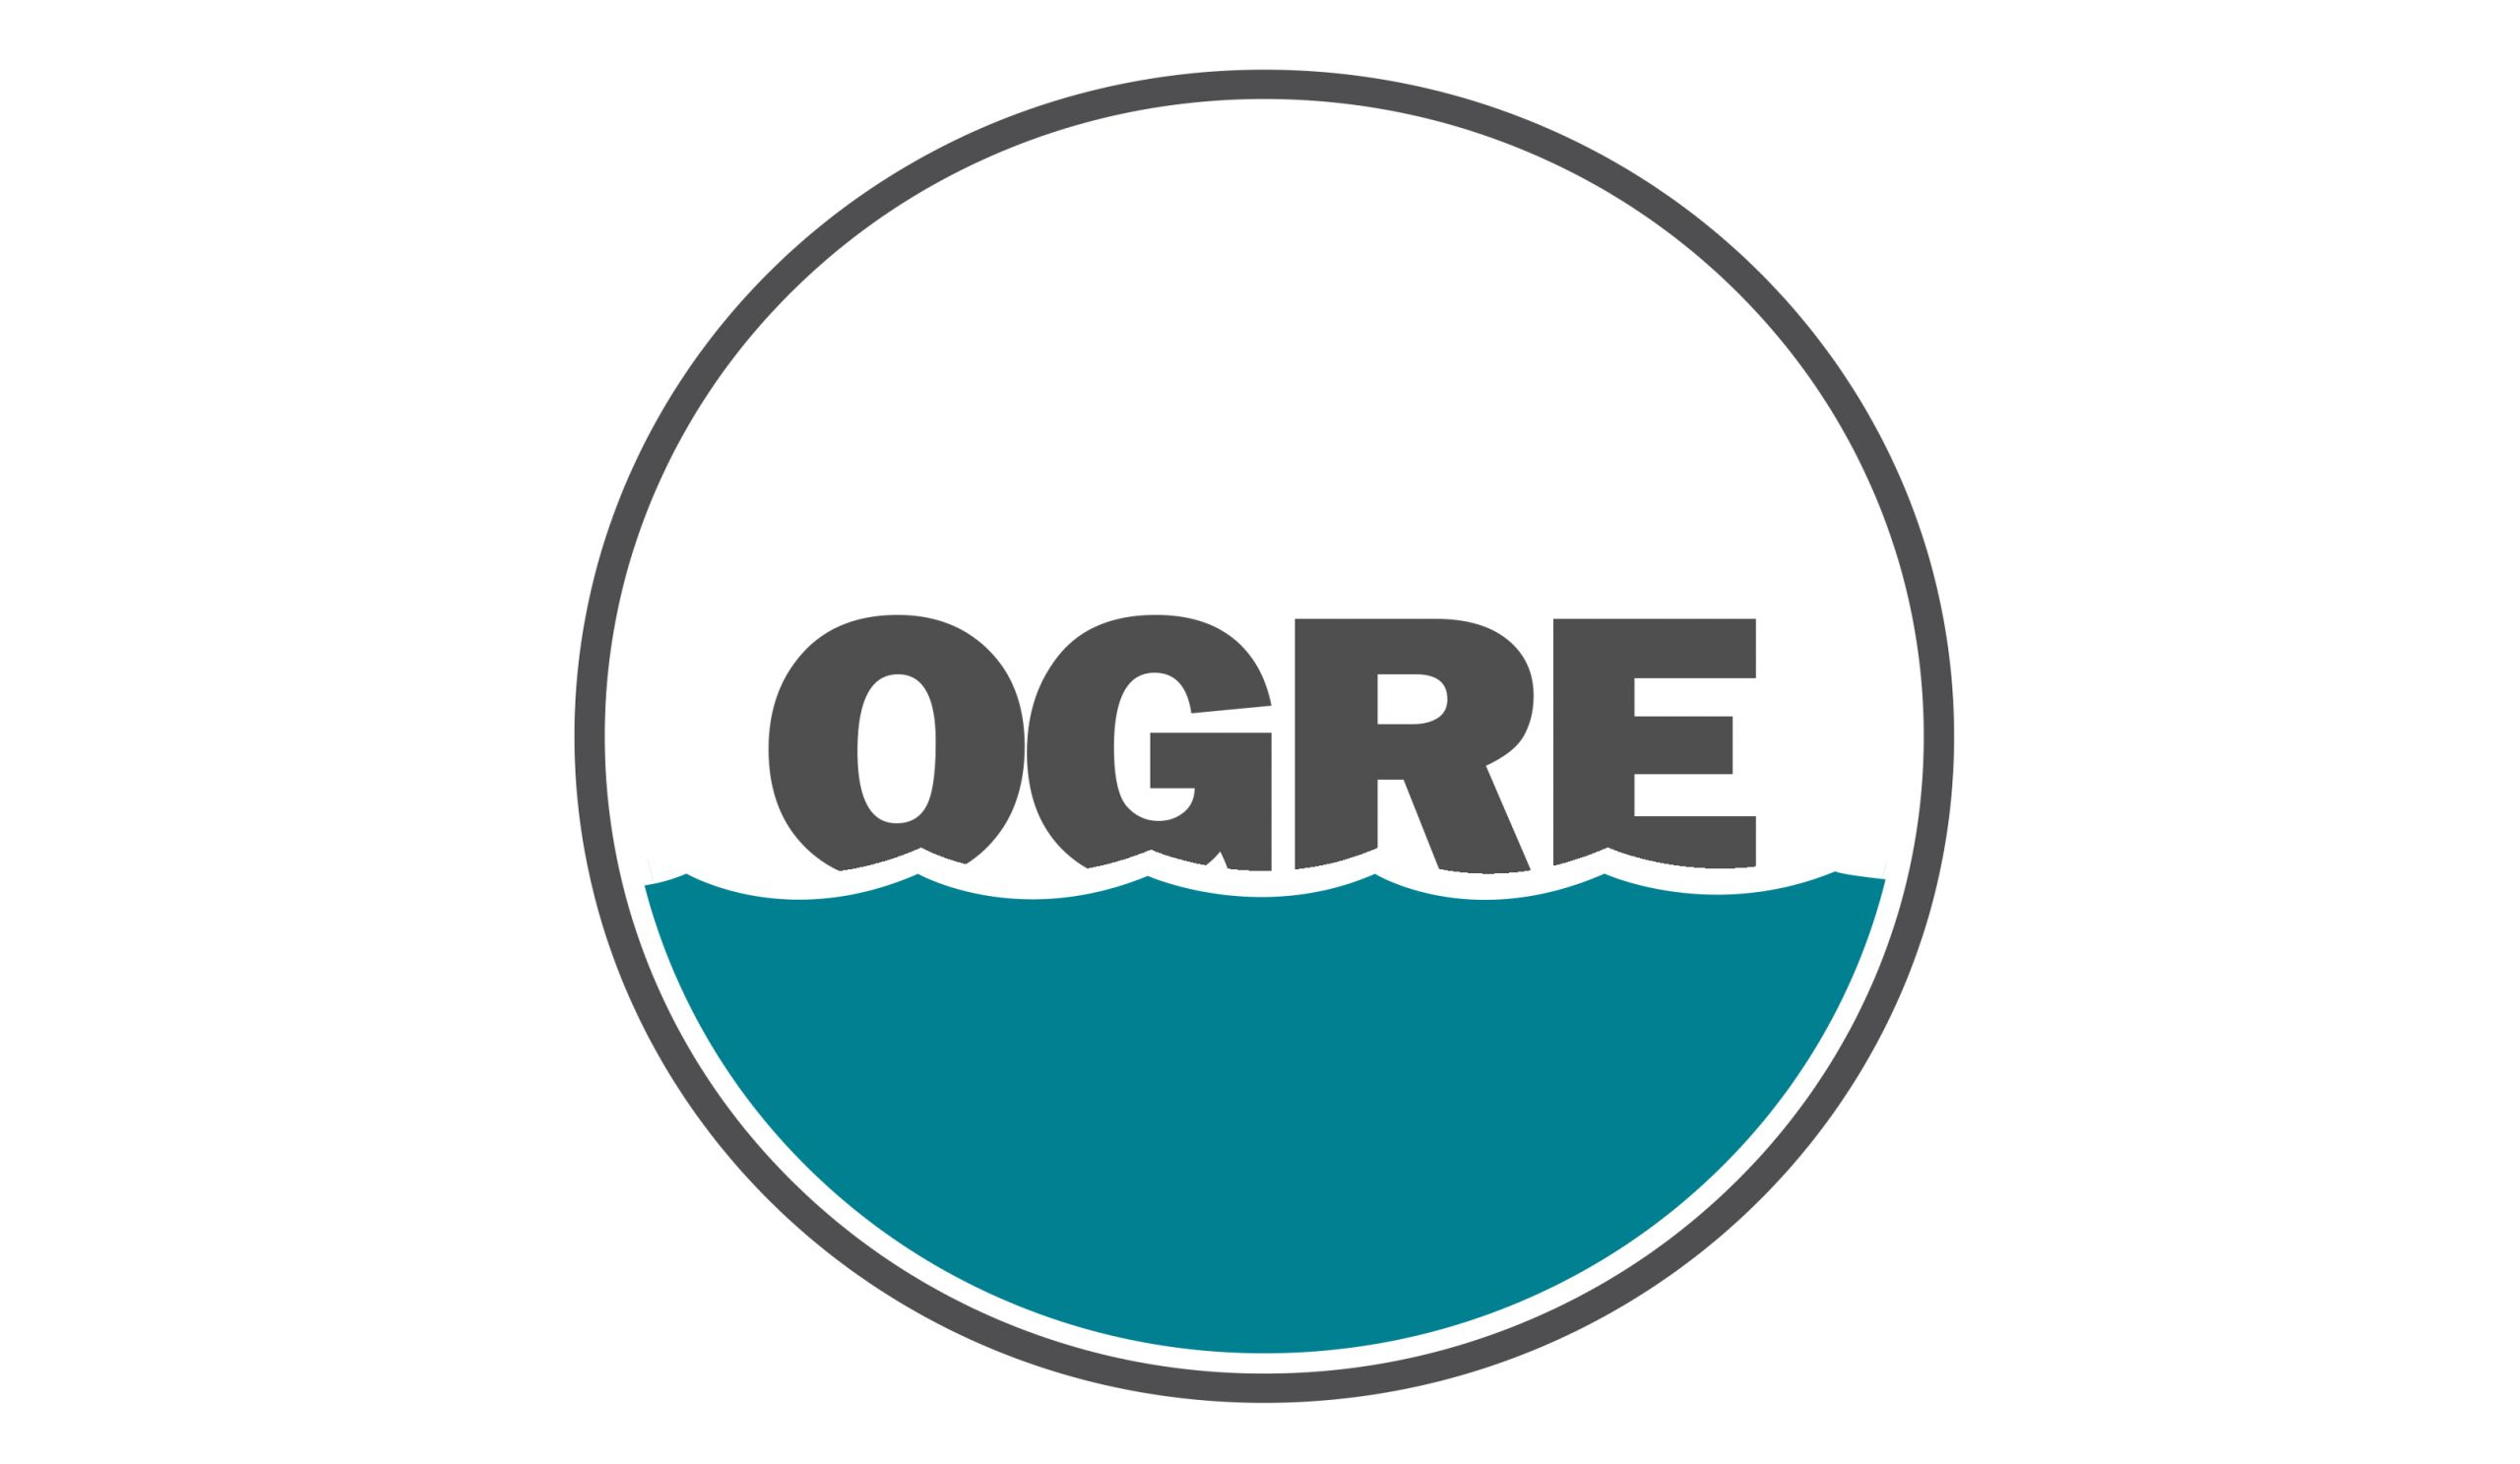 Project results - Ogre